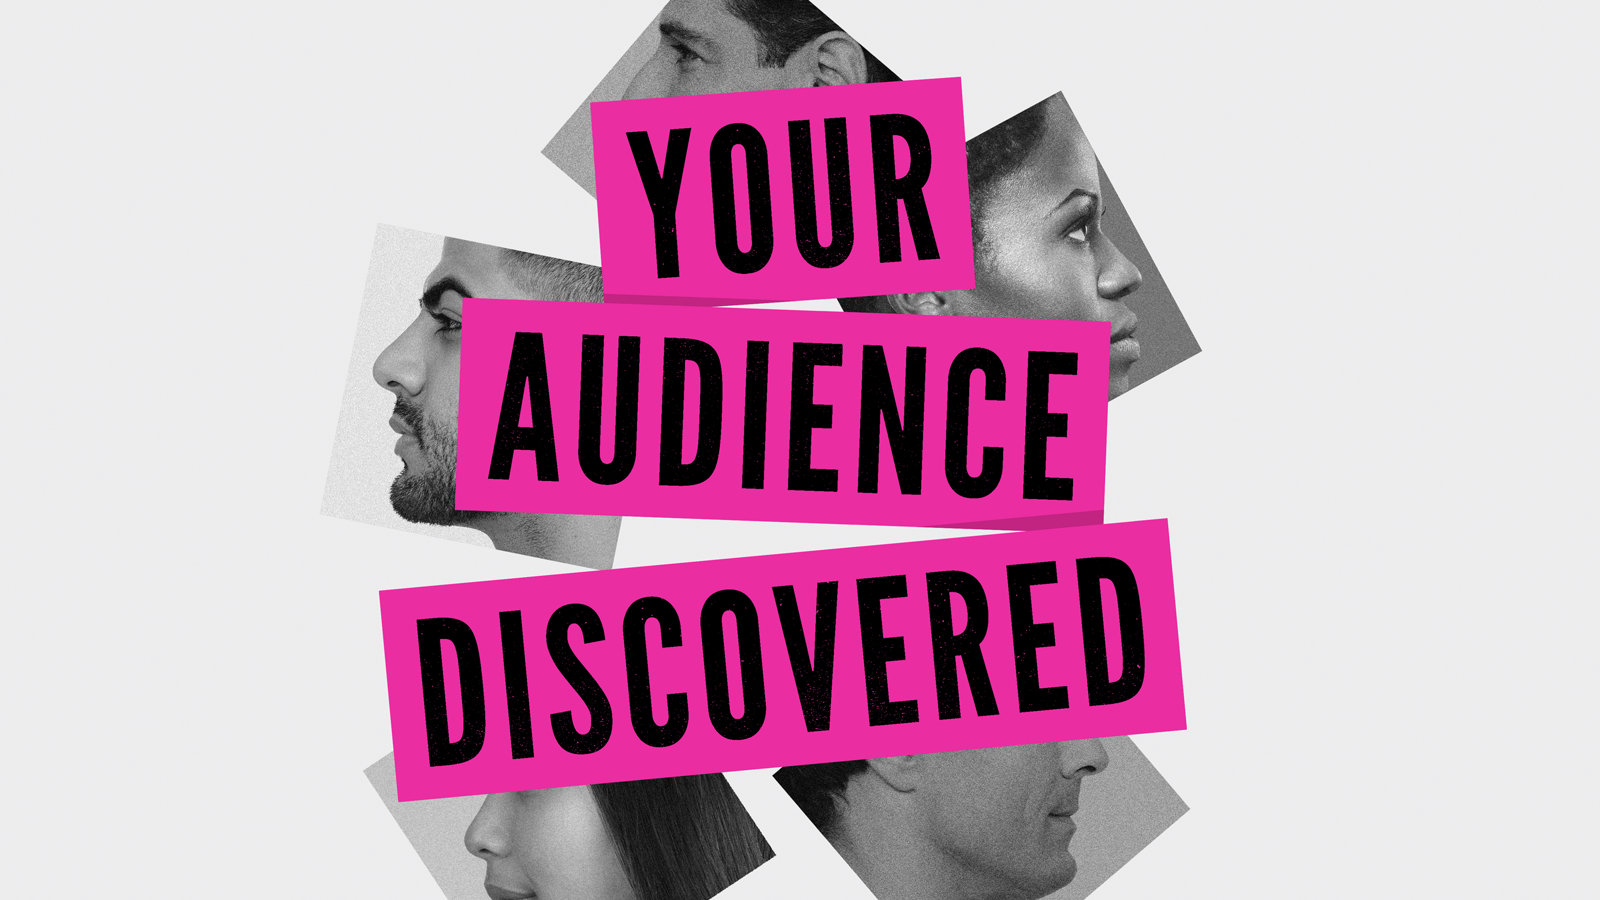 your-audience-discovered-article-header-image